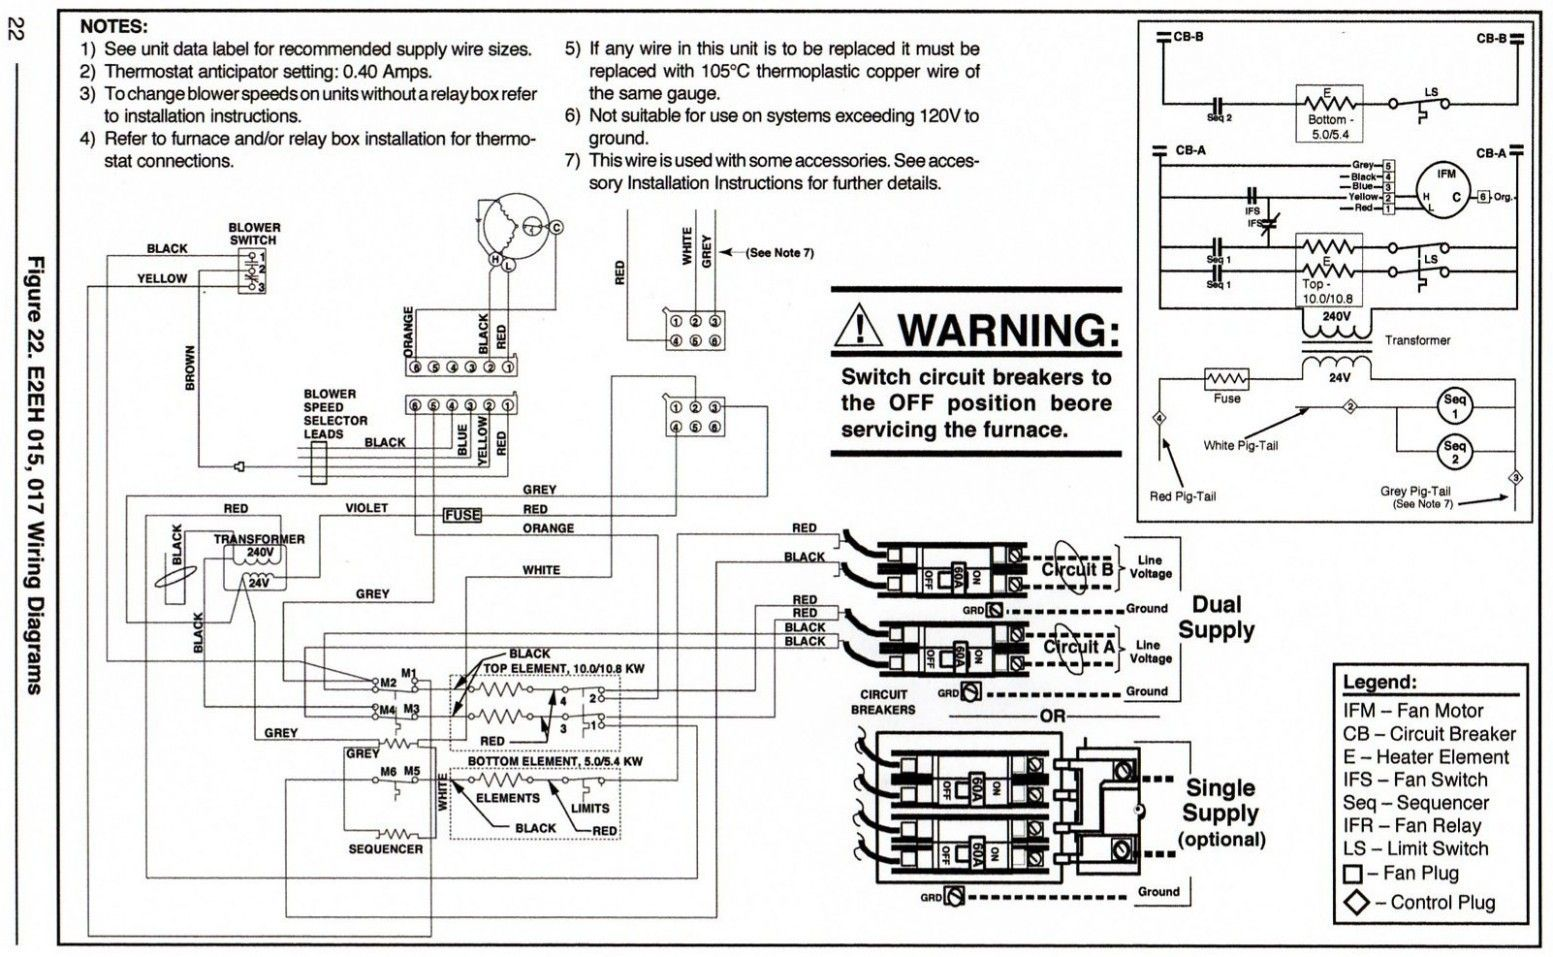 Nordyne E2eb 015ha Wiring Diagram Intertherm Sequencer Airfurnace Us Endear  For E2eb 015ha Wiring Diagram | Thermostat wiring, Electric furnace,  ThermostatPinterest